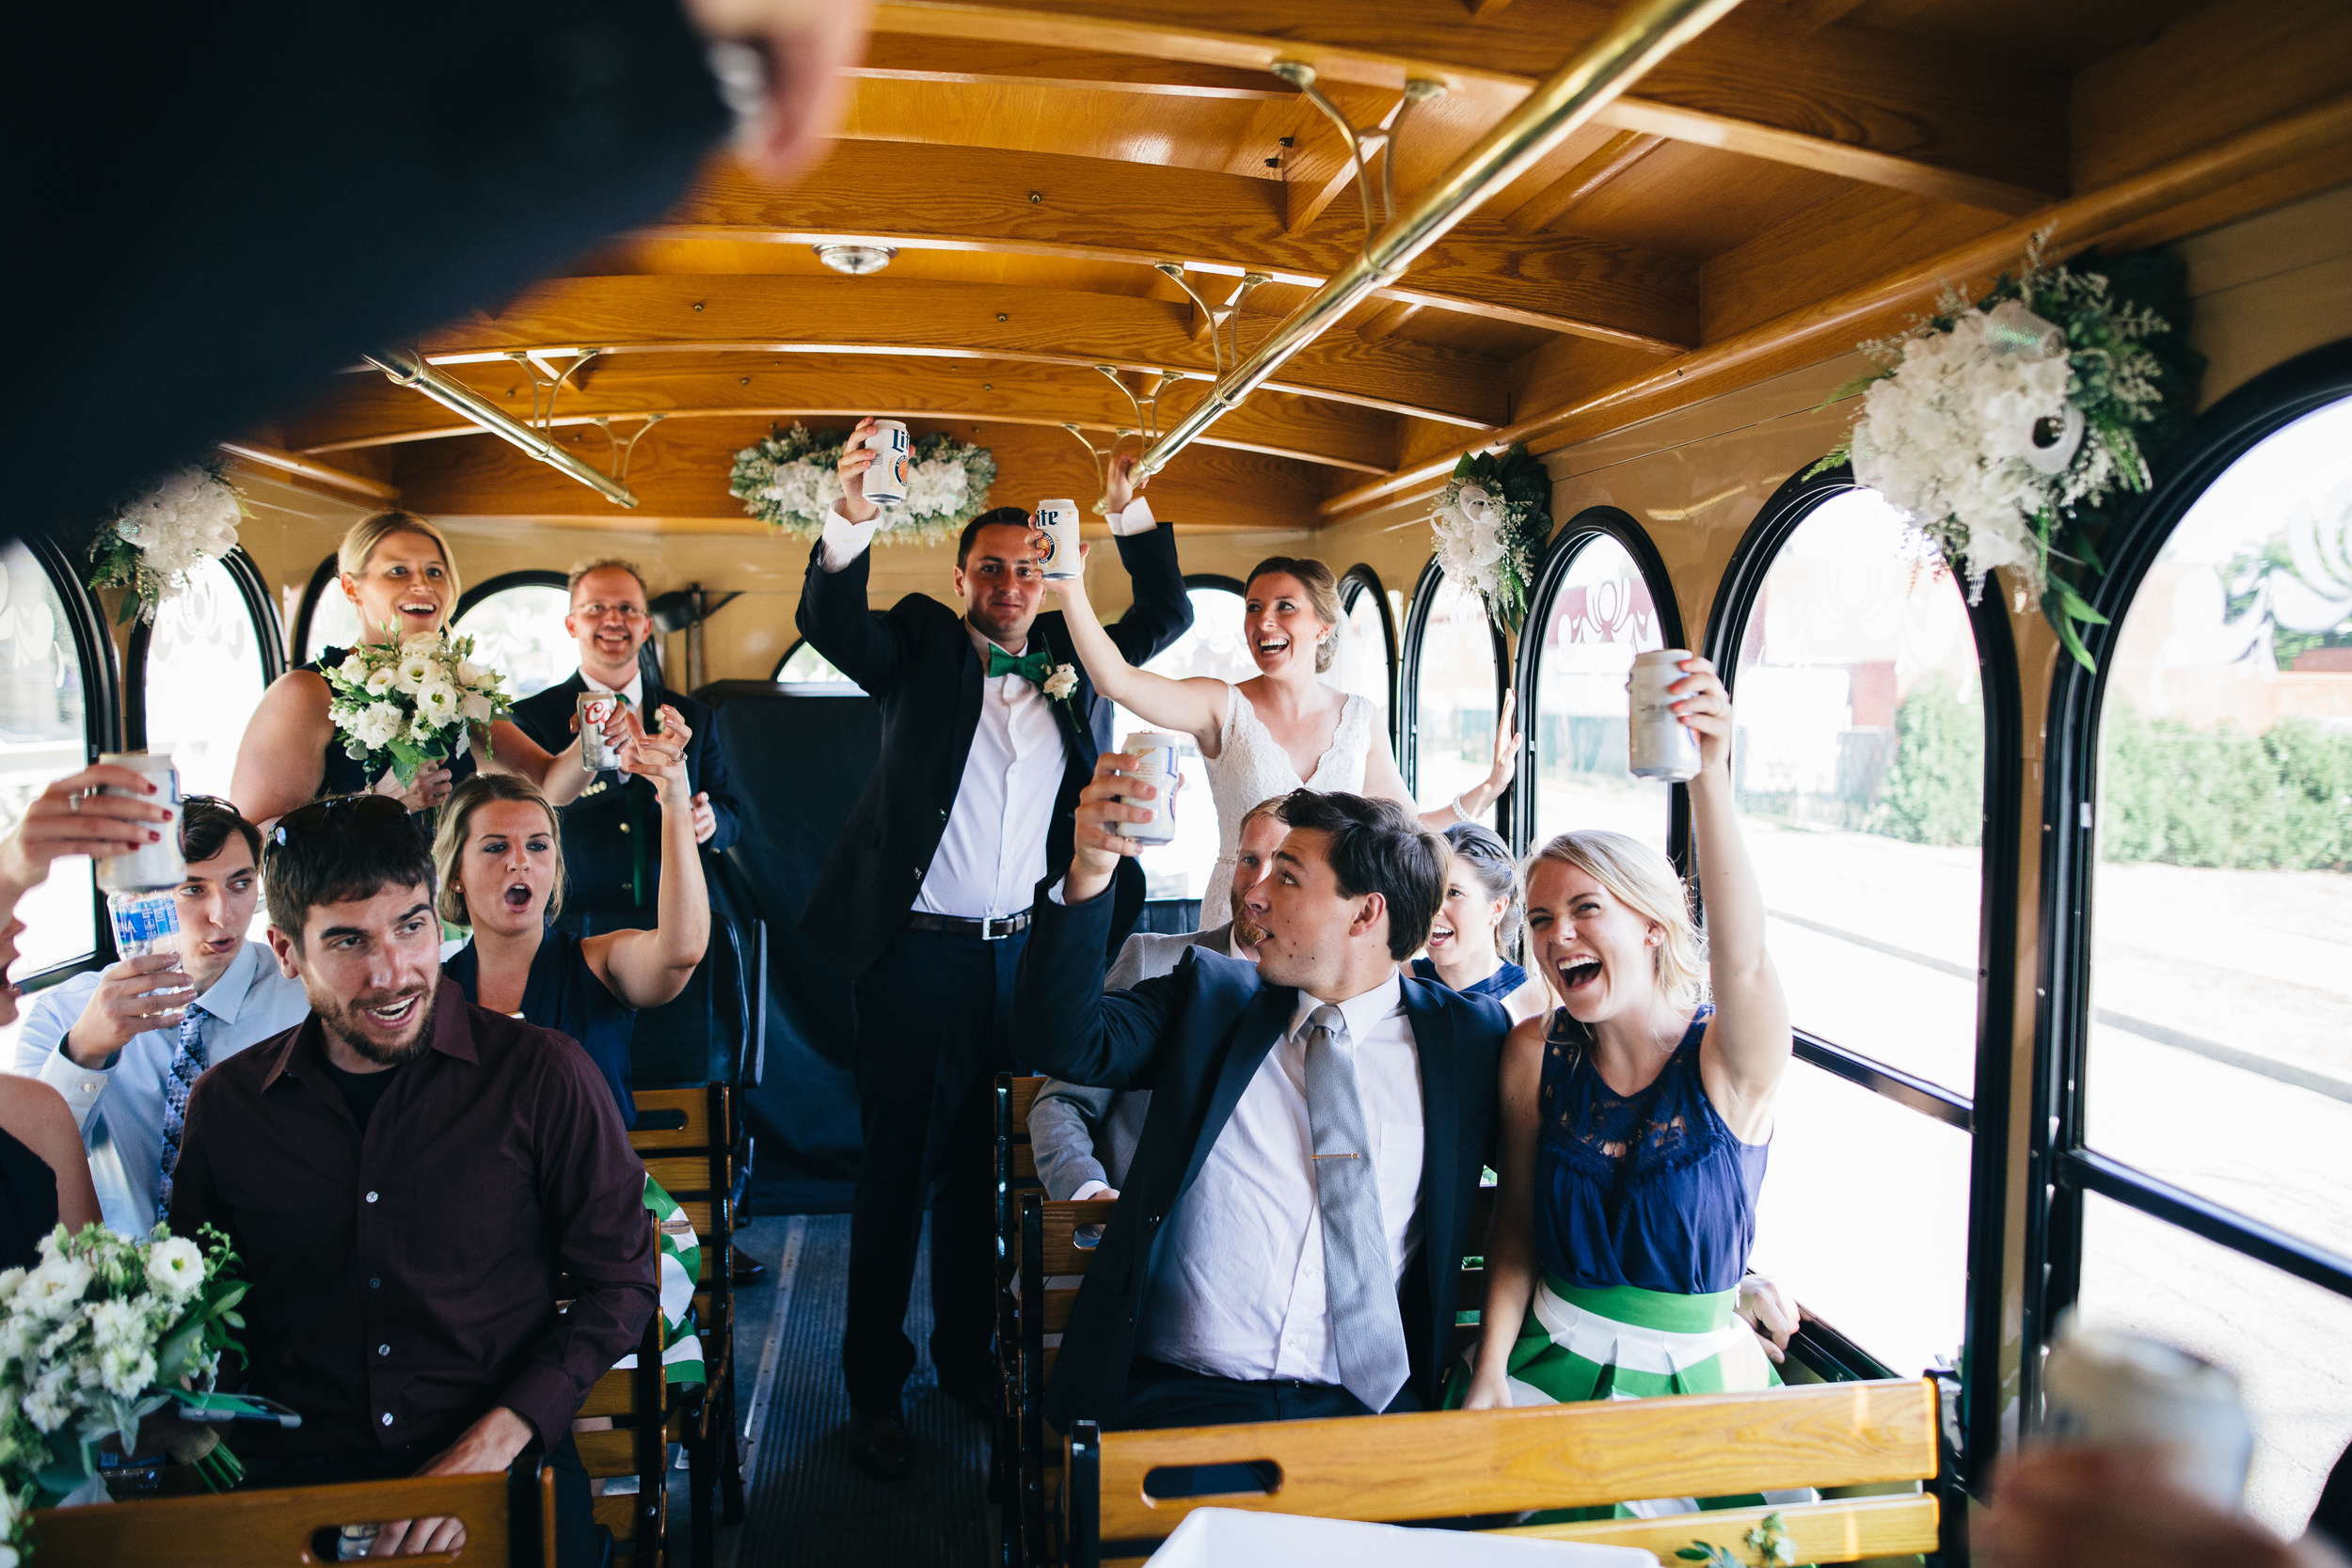 Wedding day trolley ride.